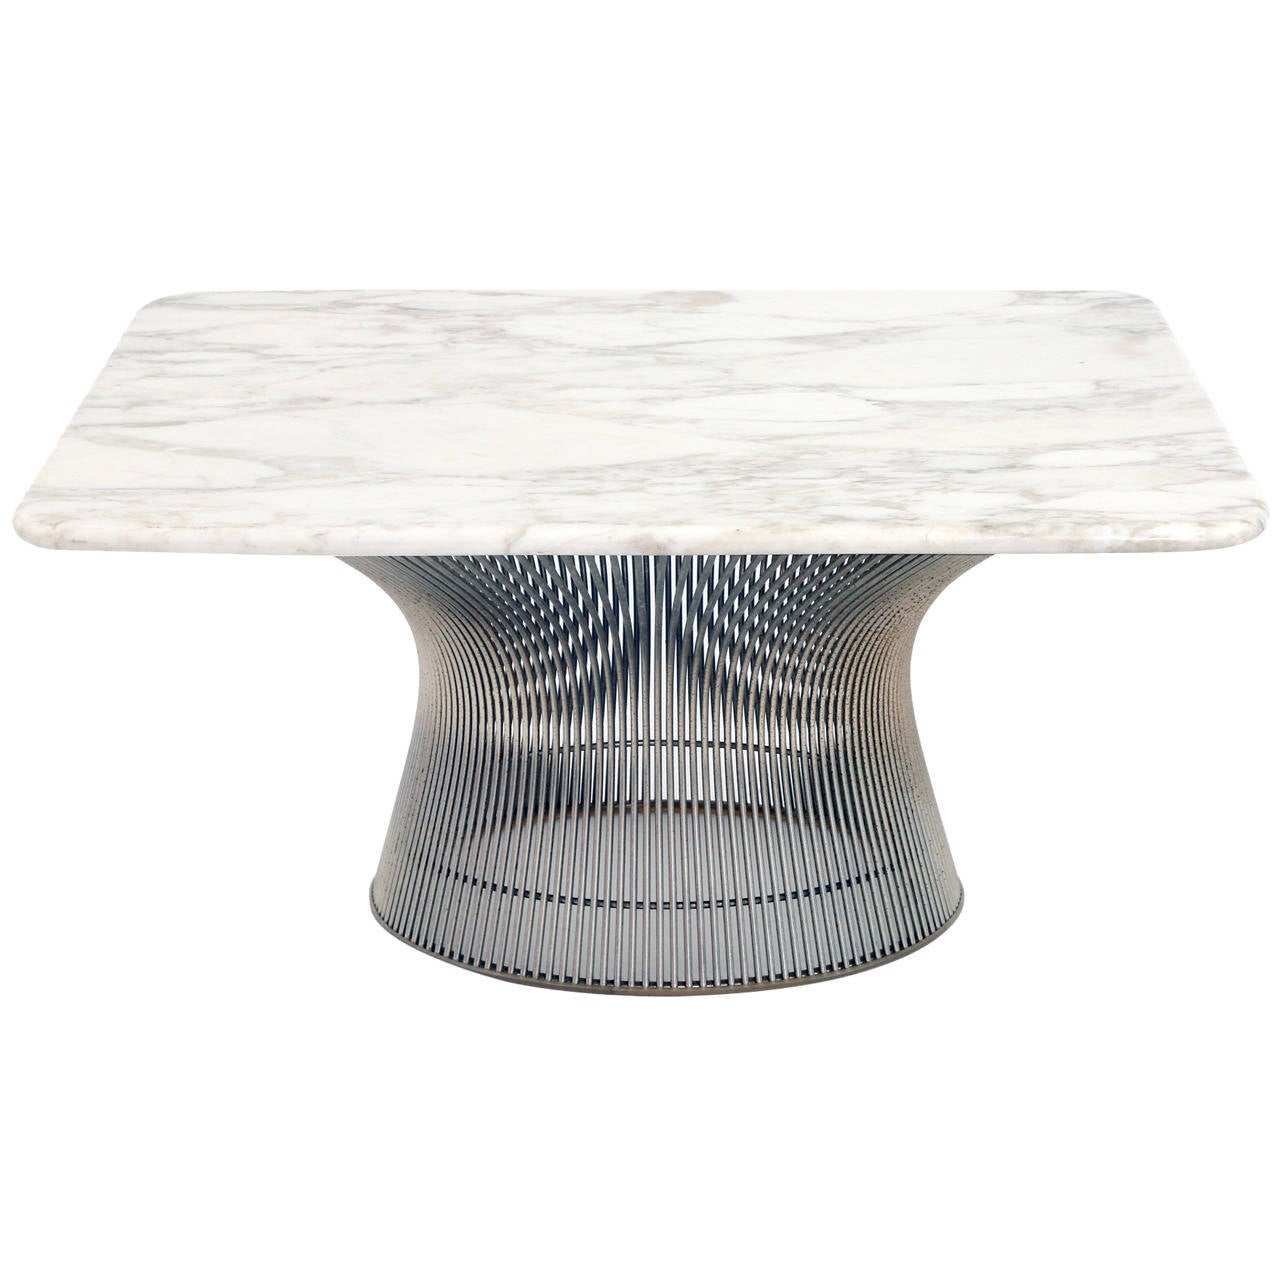 Warren Platner Knoll Custom Marble Cocktail Table For Sale At 1stdibs